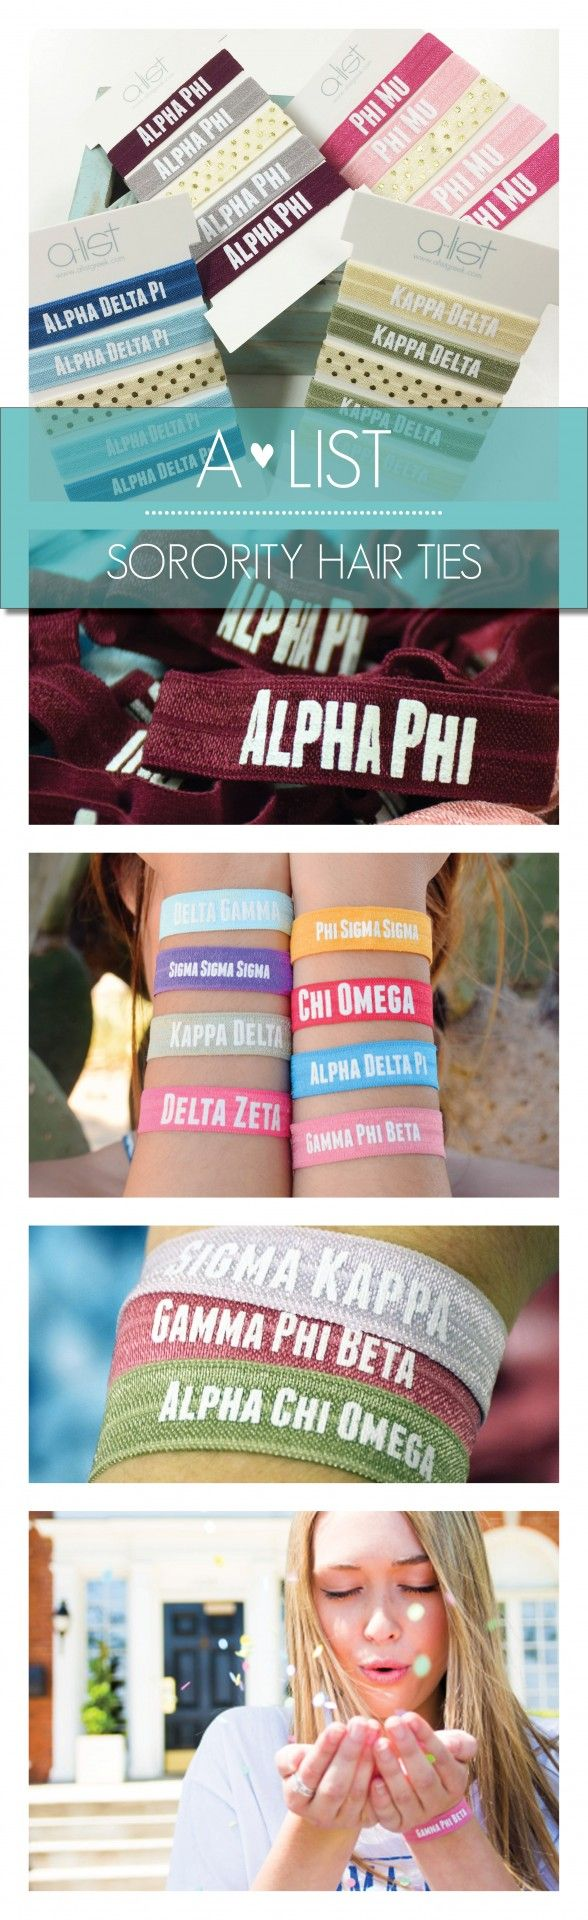 Get your hair tie on with these cute Sorority Hair Ties. Available in an assortment of tassel colors from www.alistgreek.com. Makes a great initiation, bid day or big/little gift! #sorority